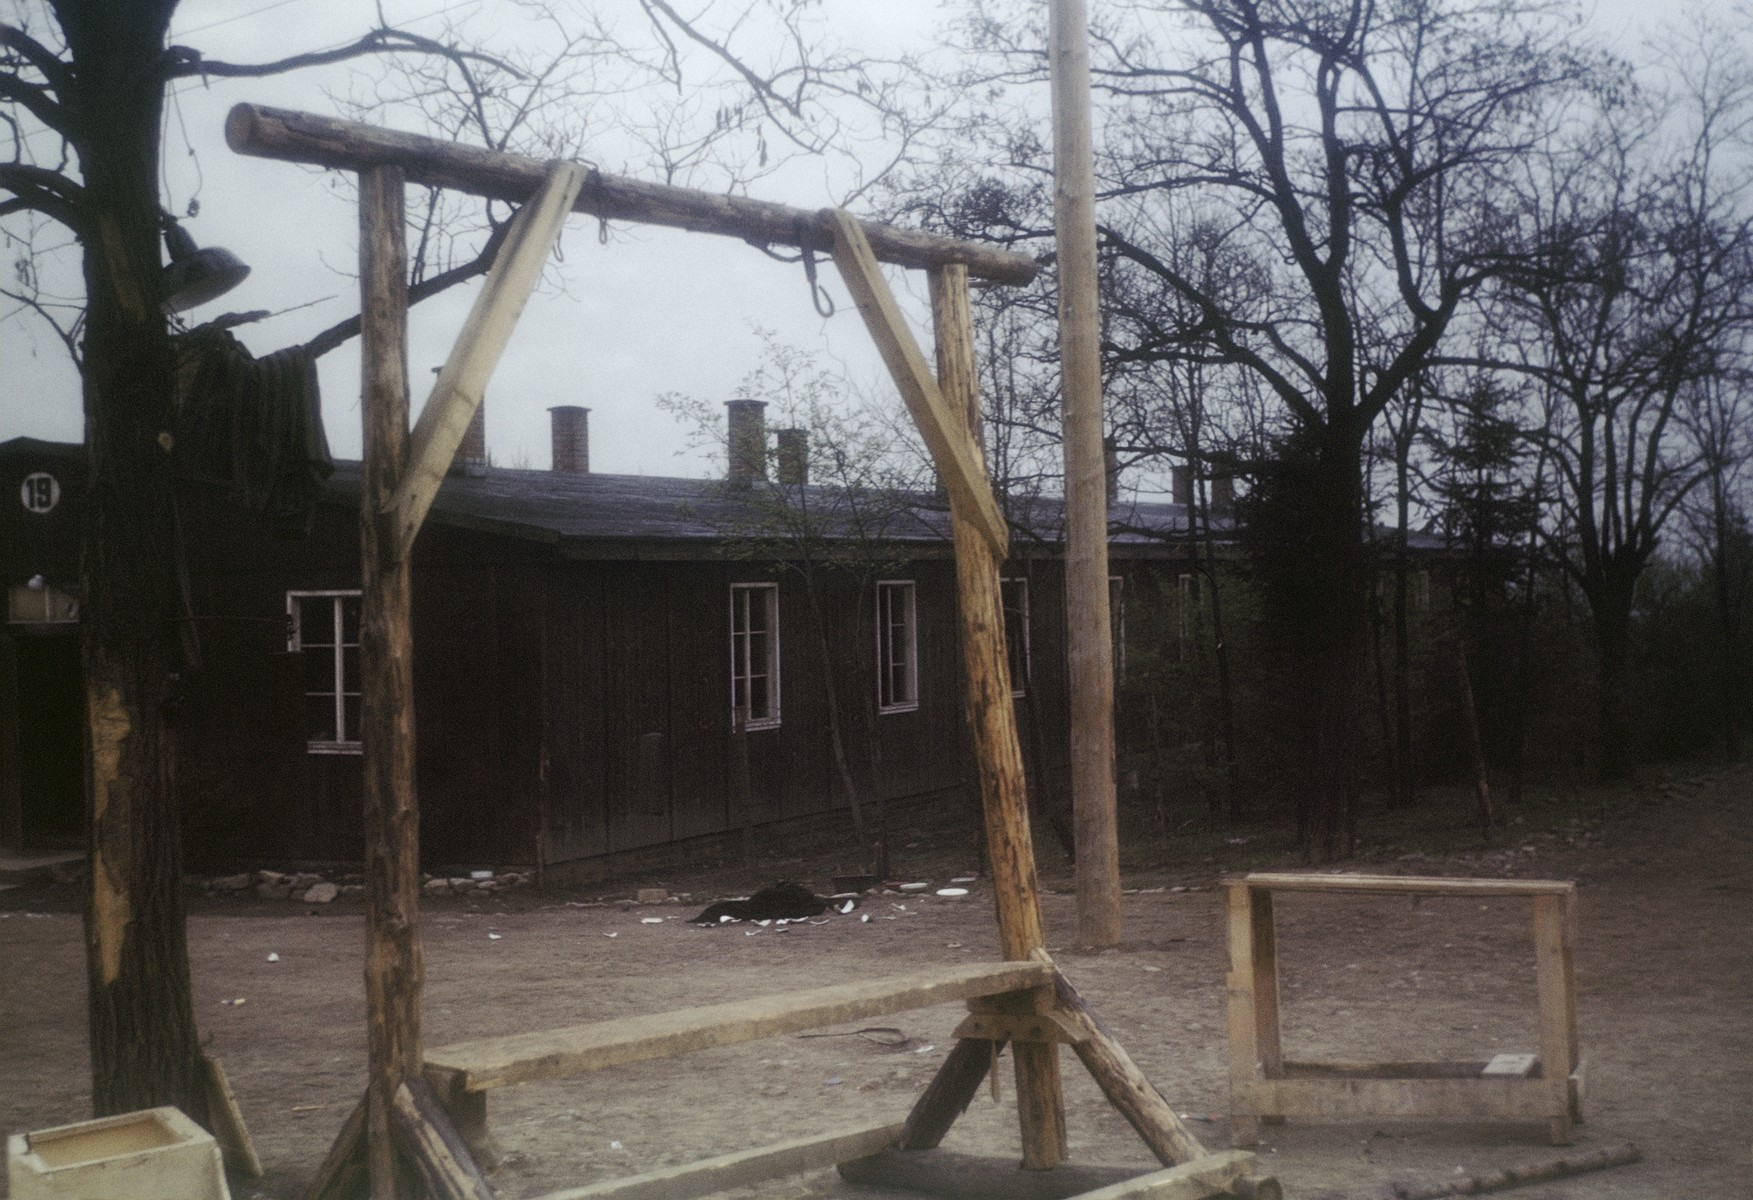 View of the gallows in the Ohrdruf concentration camp.